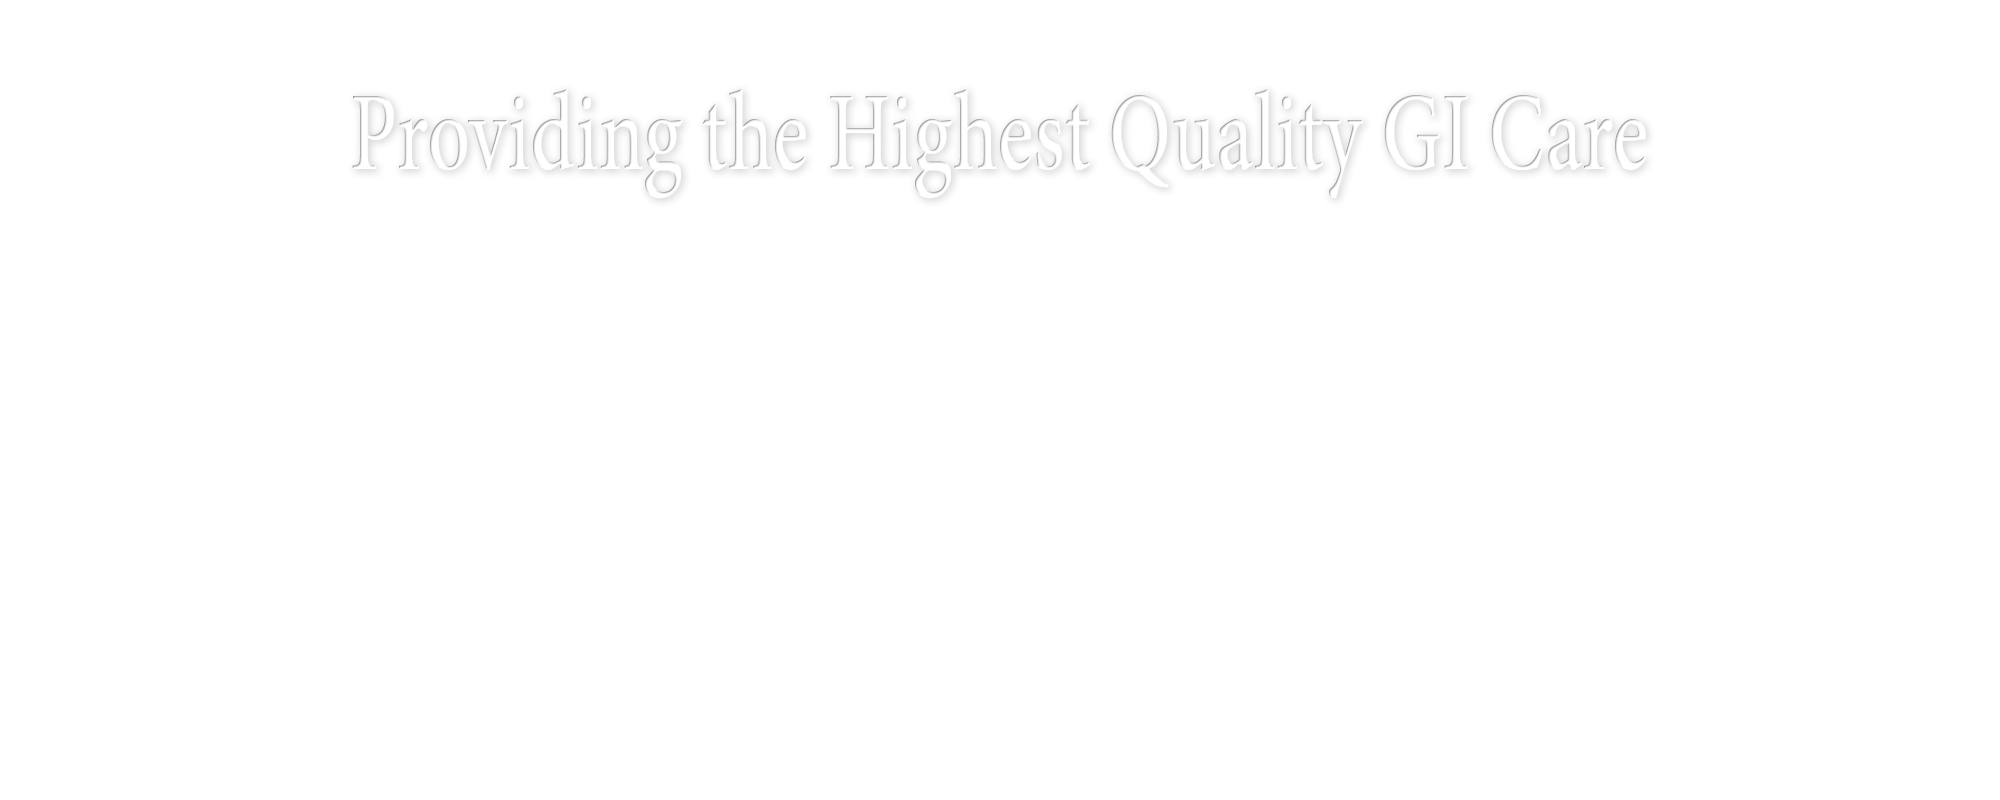 providing the highest quality gi care